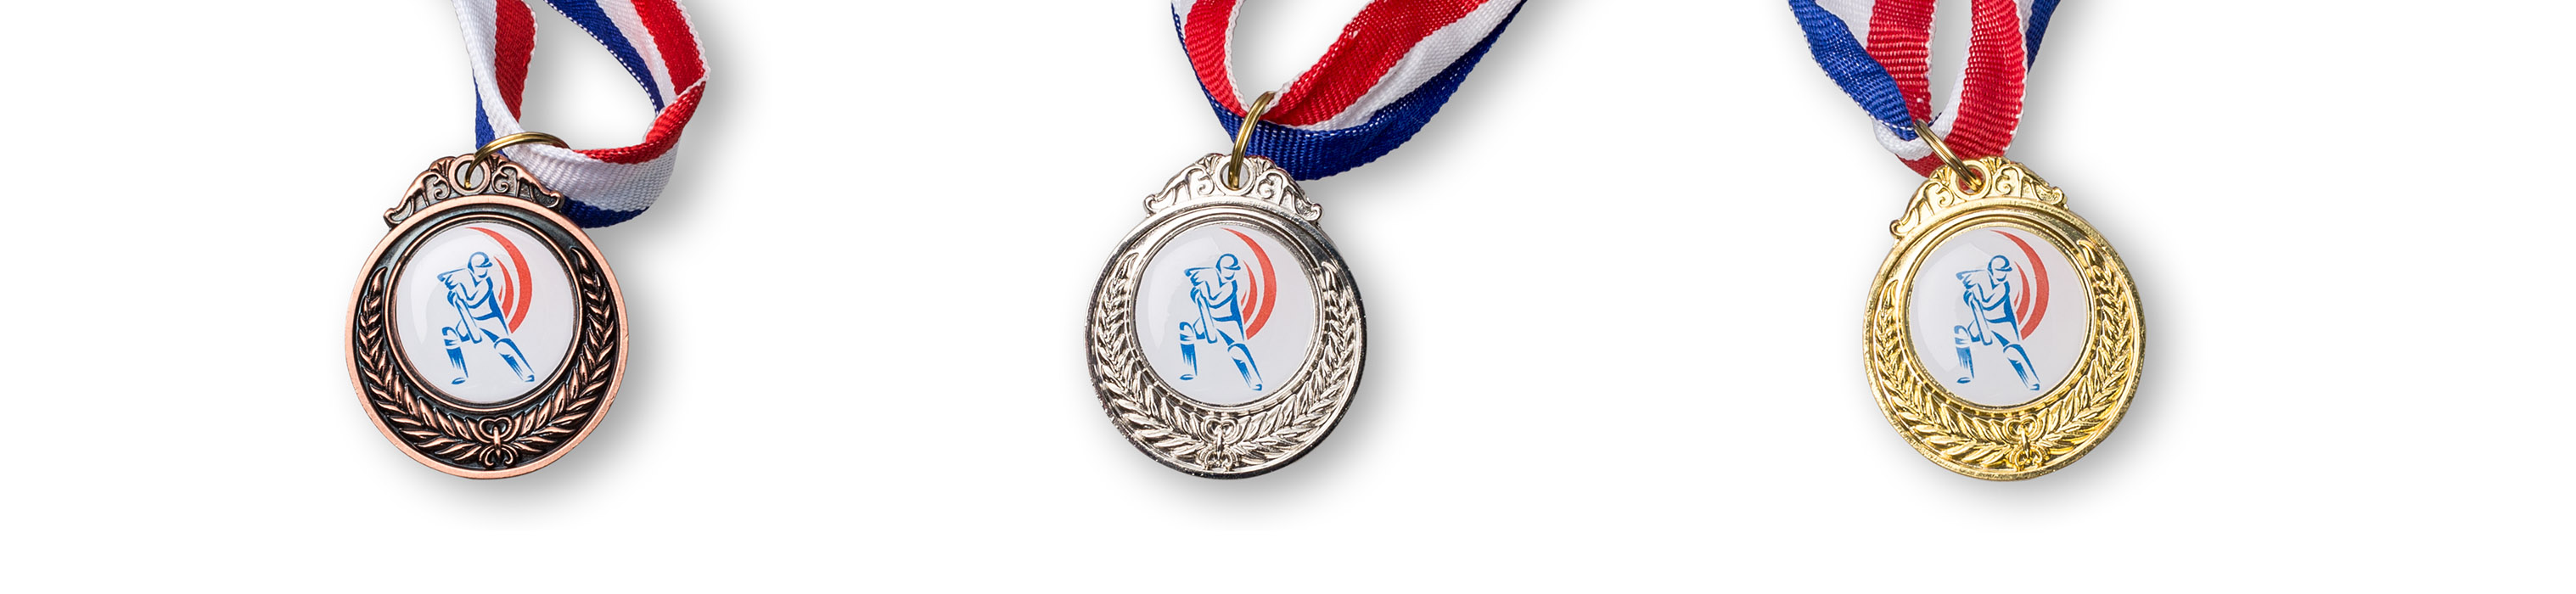 MEDALS FOR SPORTING EVENTS